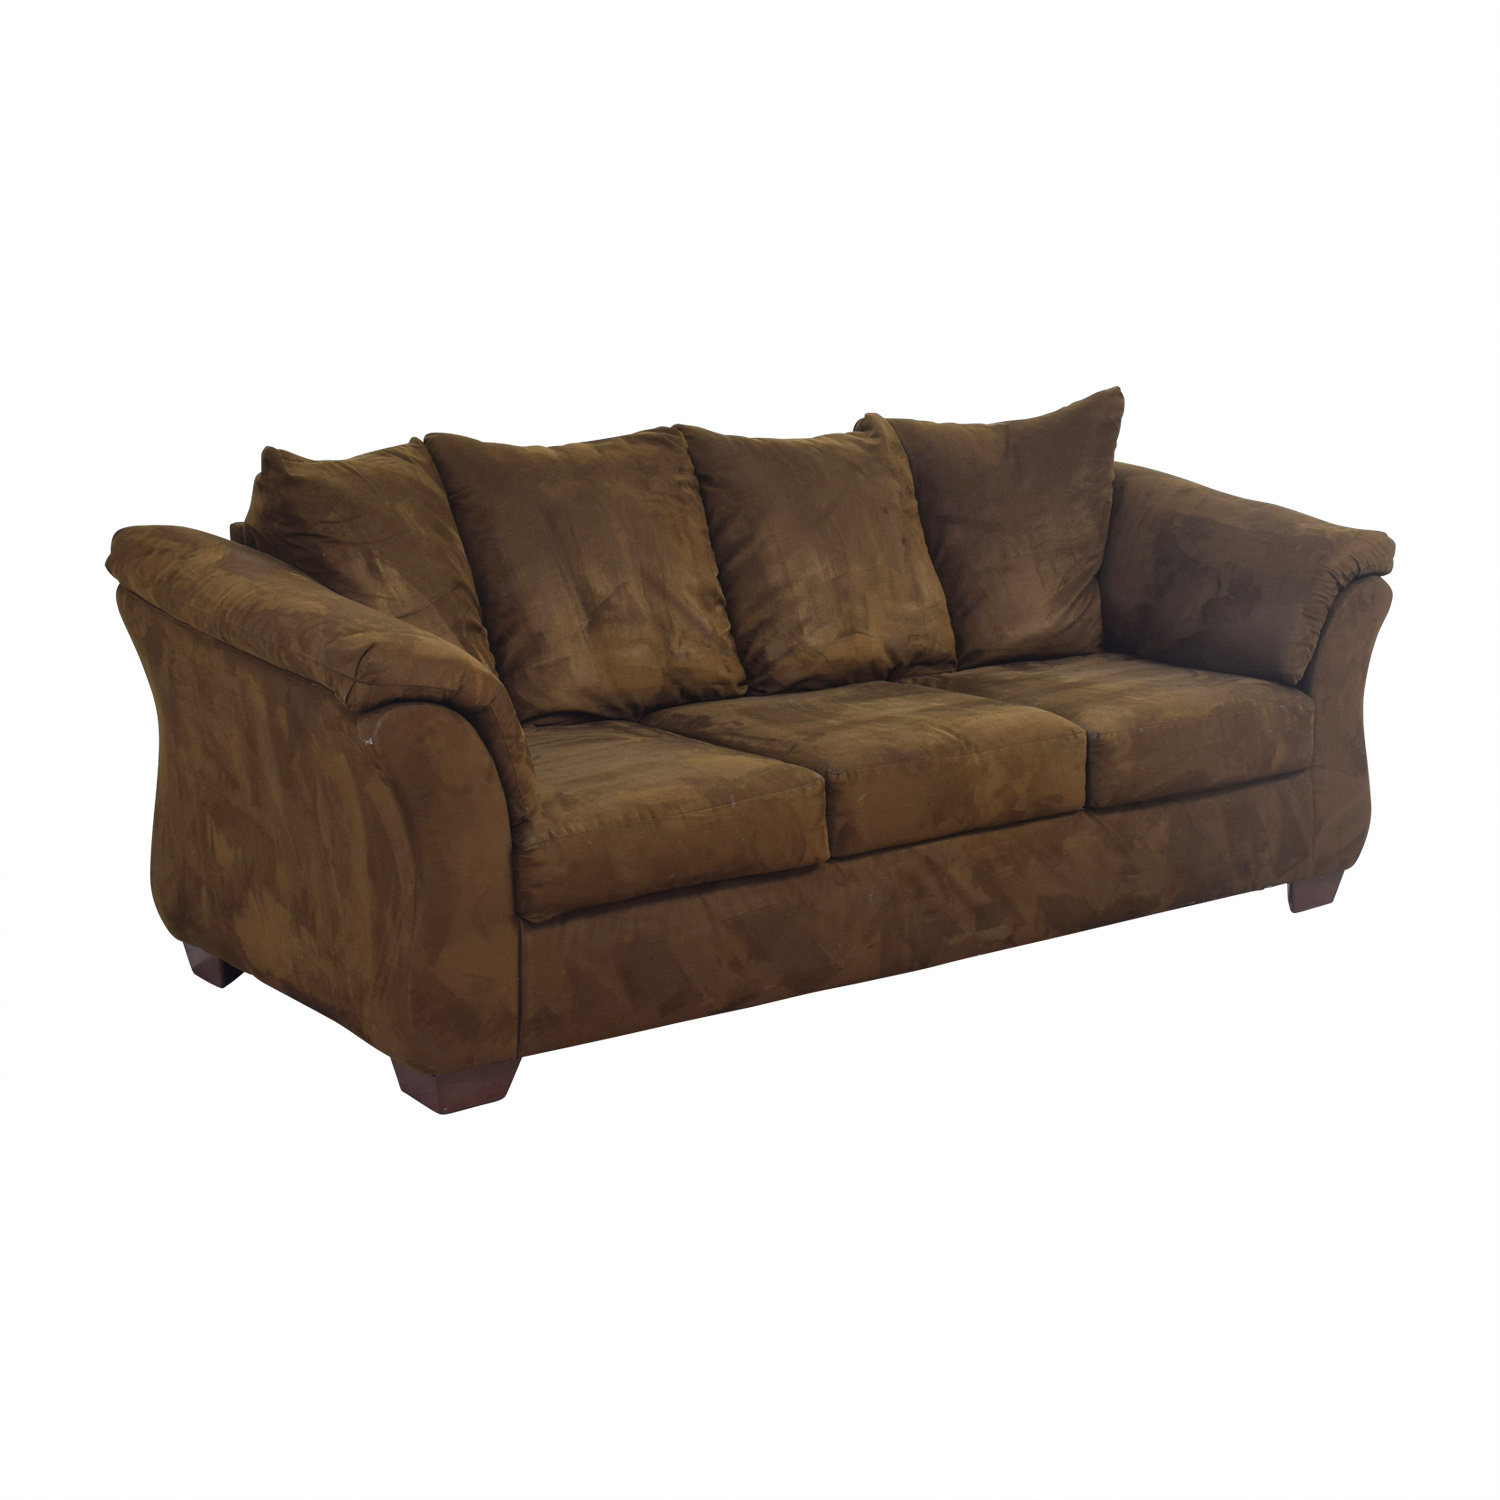 OFF Ashley Furniture Ashley Furniture Three Cushion Brown